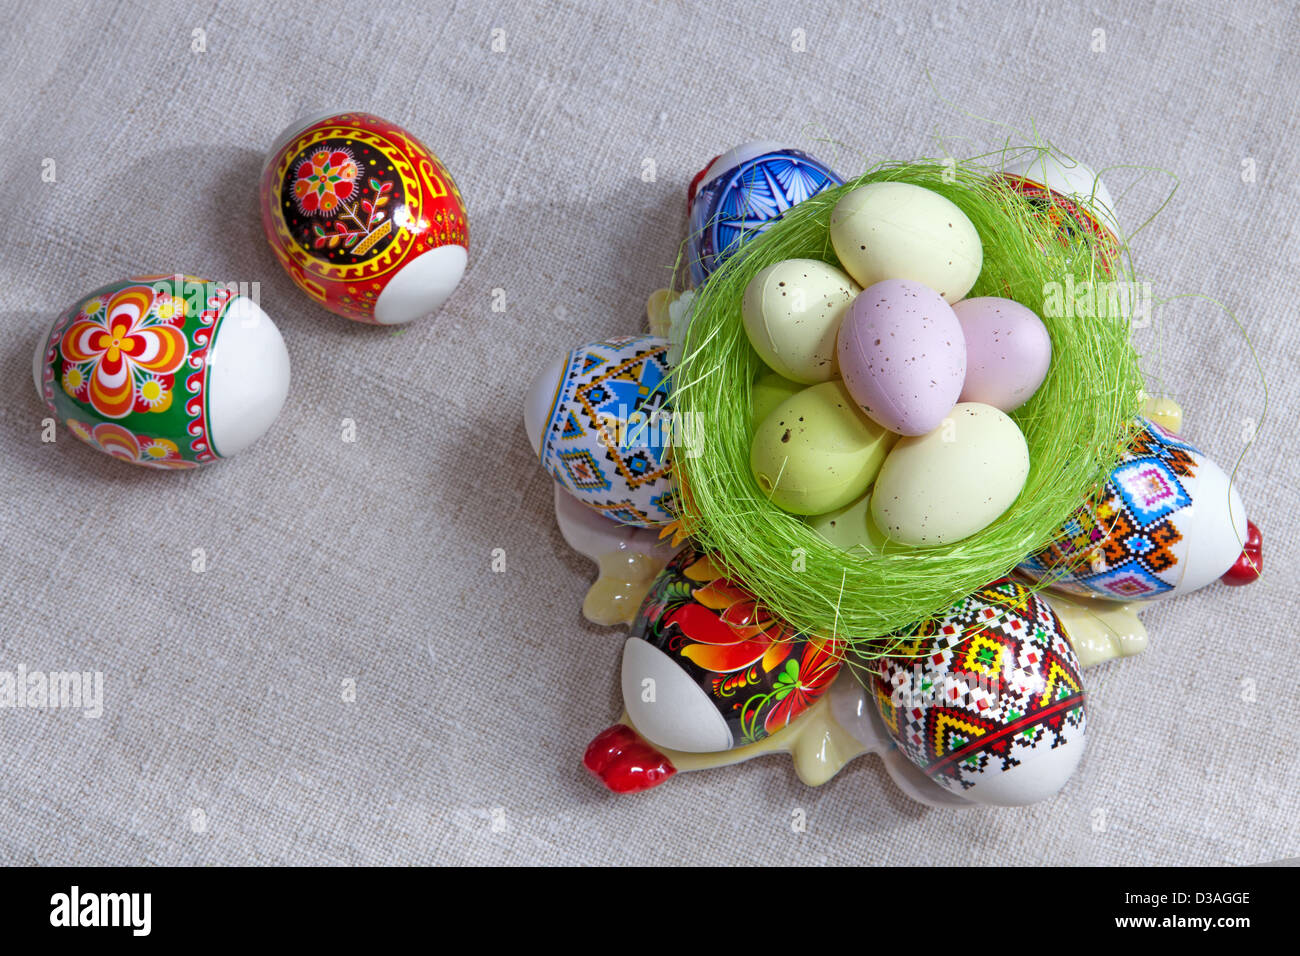 Painted Colorful Easter Eggs on linen fabric - Stock Image